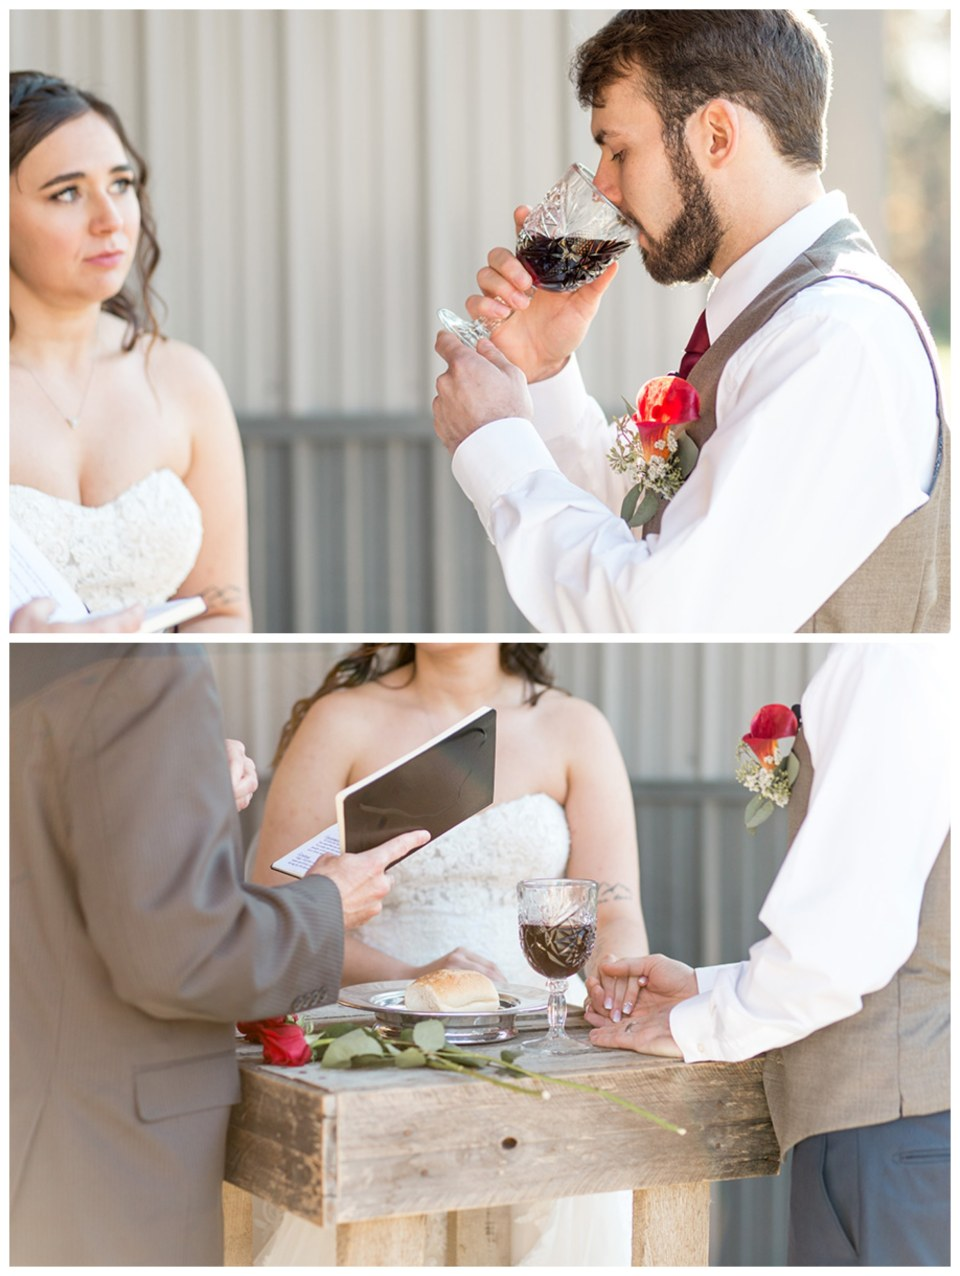 communion as husband and wife during wedding ceremony at Turkey Trac farms